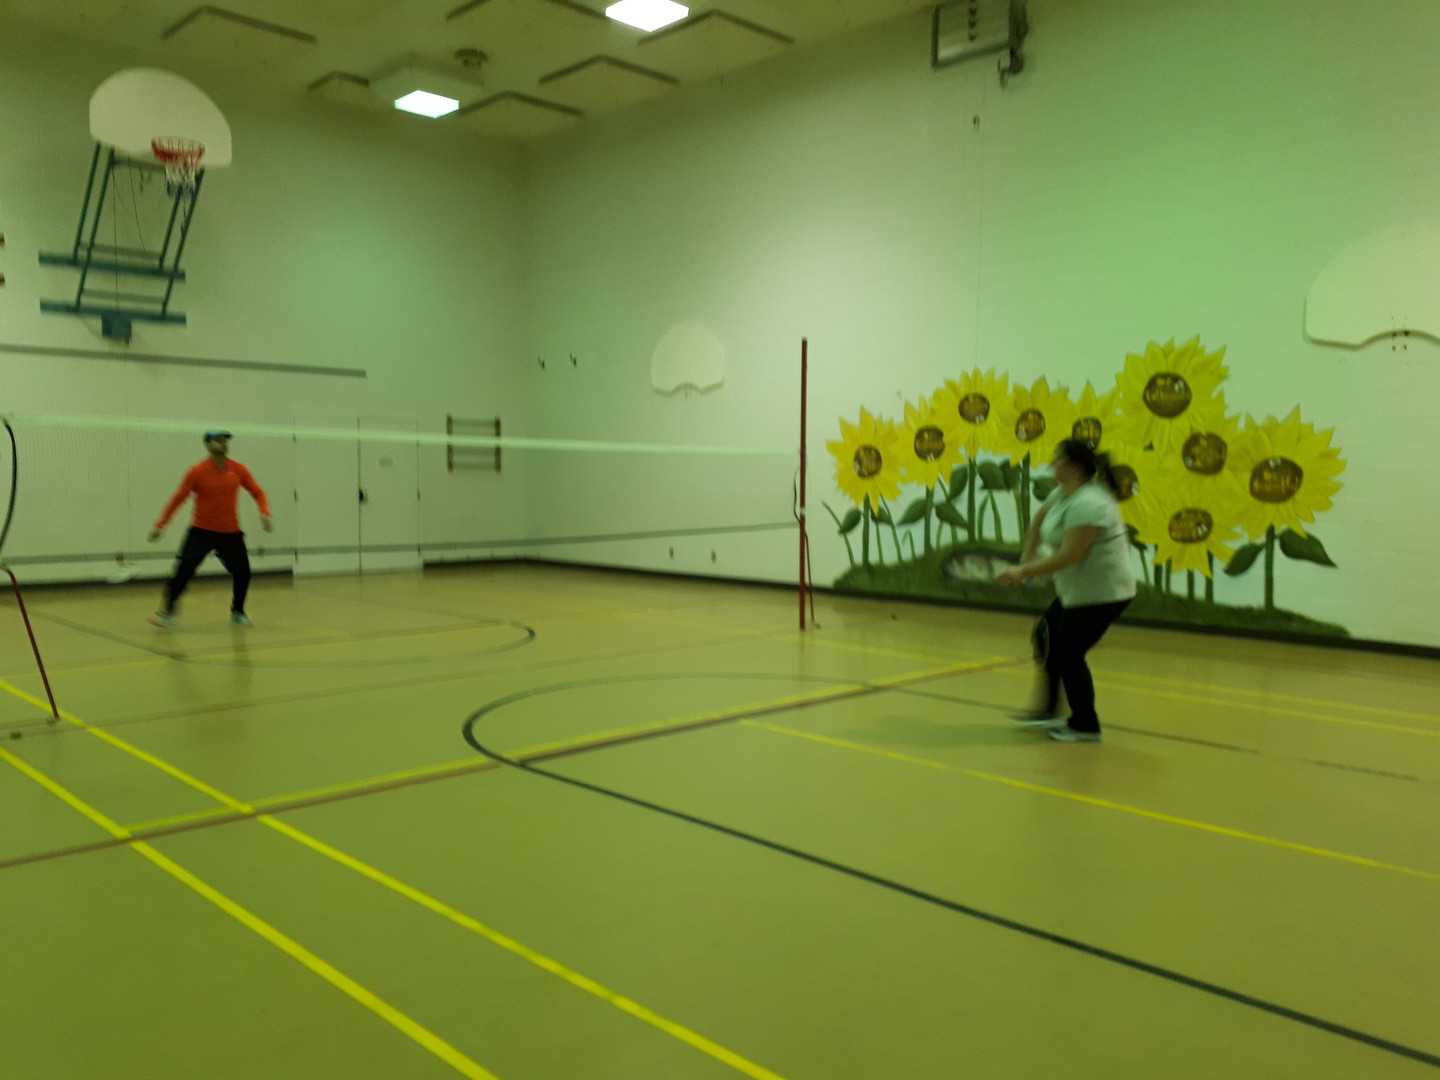 Badminton and volleyball are great fun in the gym